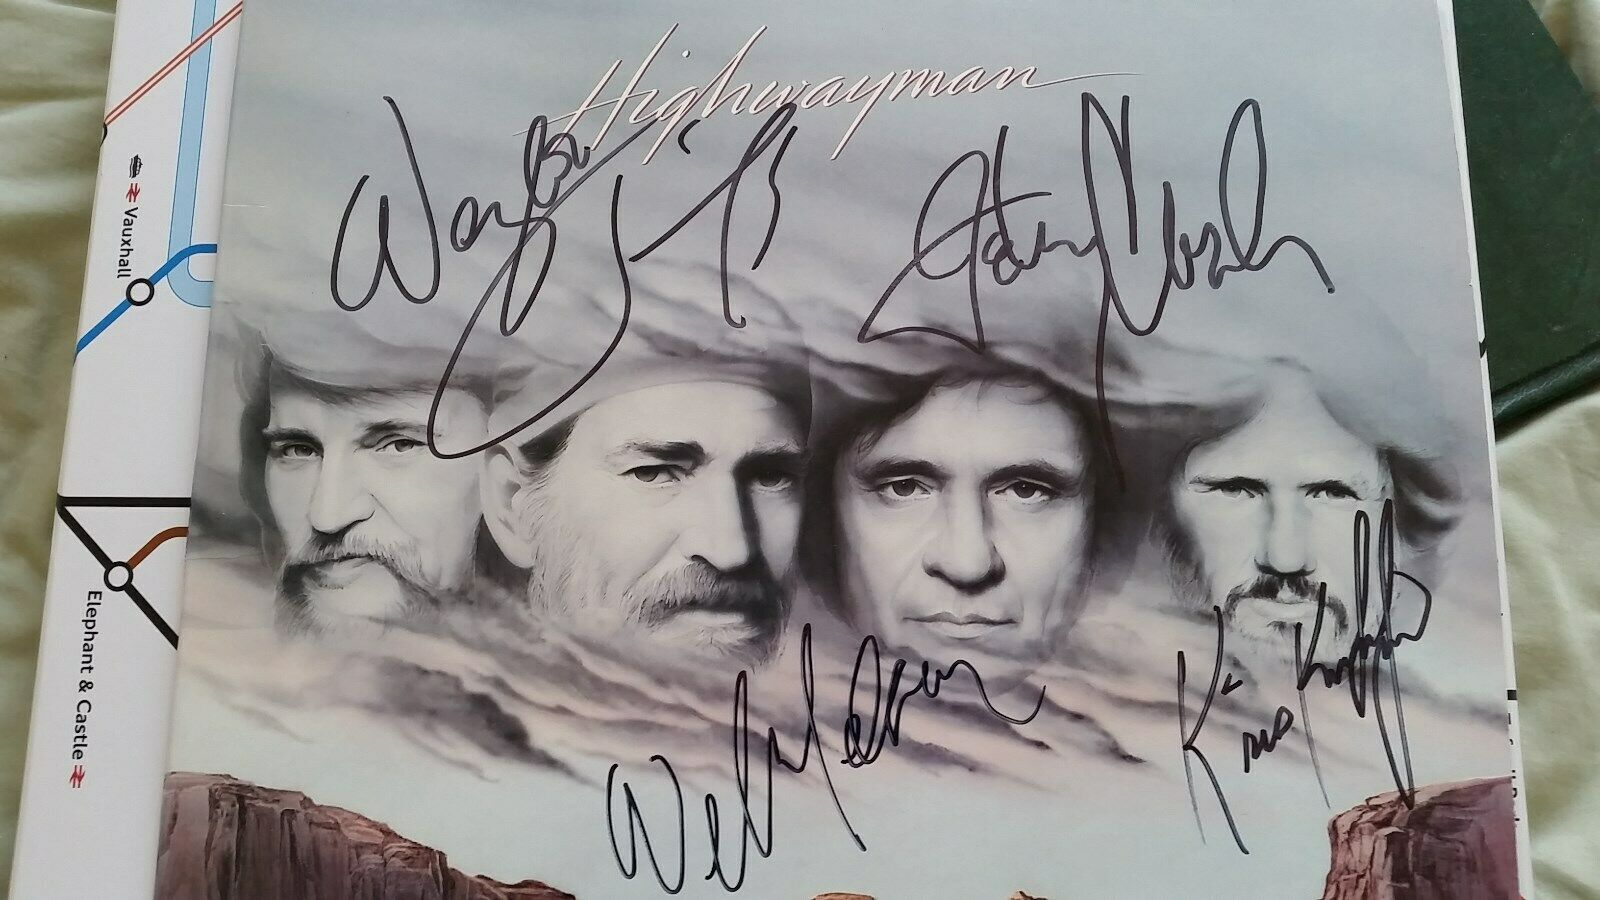 HIGHWAYMEN LP -  JENNINGS, NELSON, JOHNNY CASH, KRISTOFFERSON -  SIGNED BY ALL 4